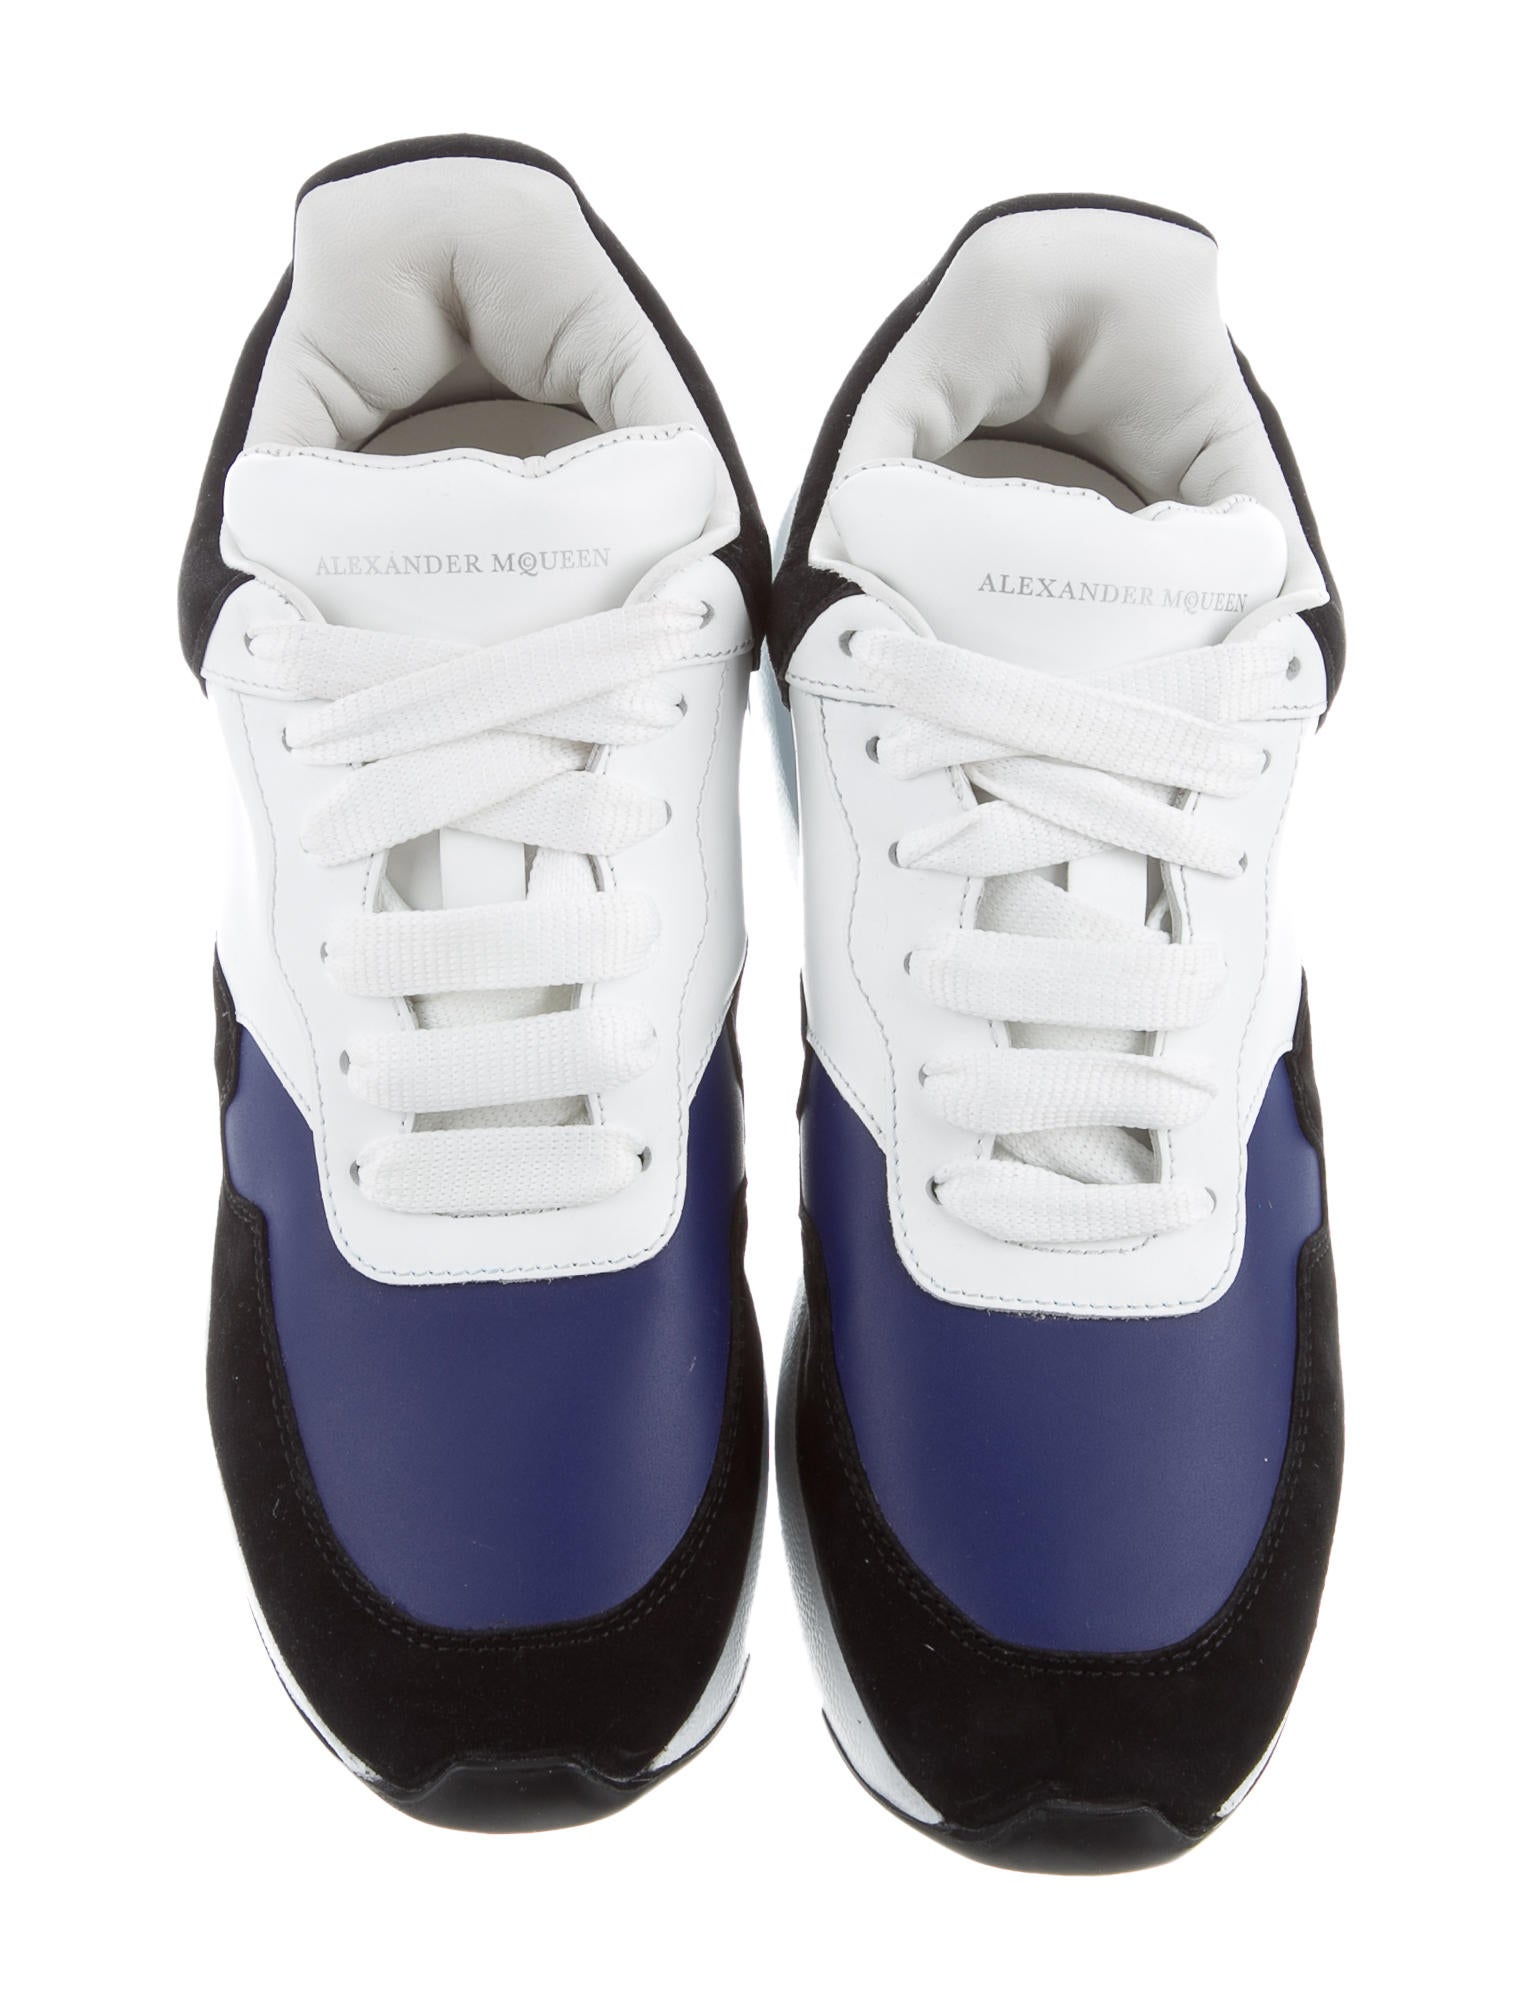 discount best wholesale Alexander McQueen 2018 Colorblock Sneakers clearance countdown package choice for sale best prices cheap online clearance wiki 2Qh5ZurwRd